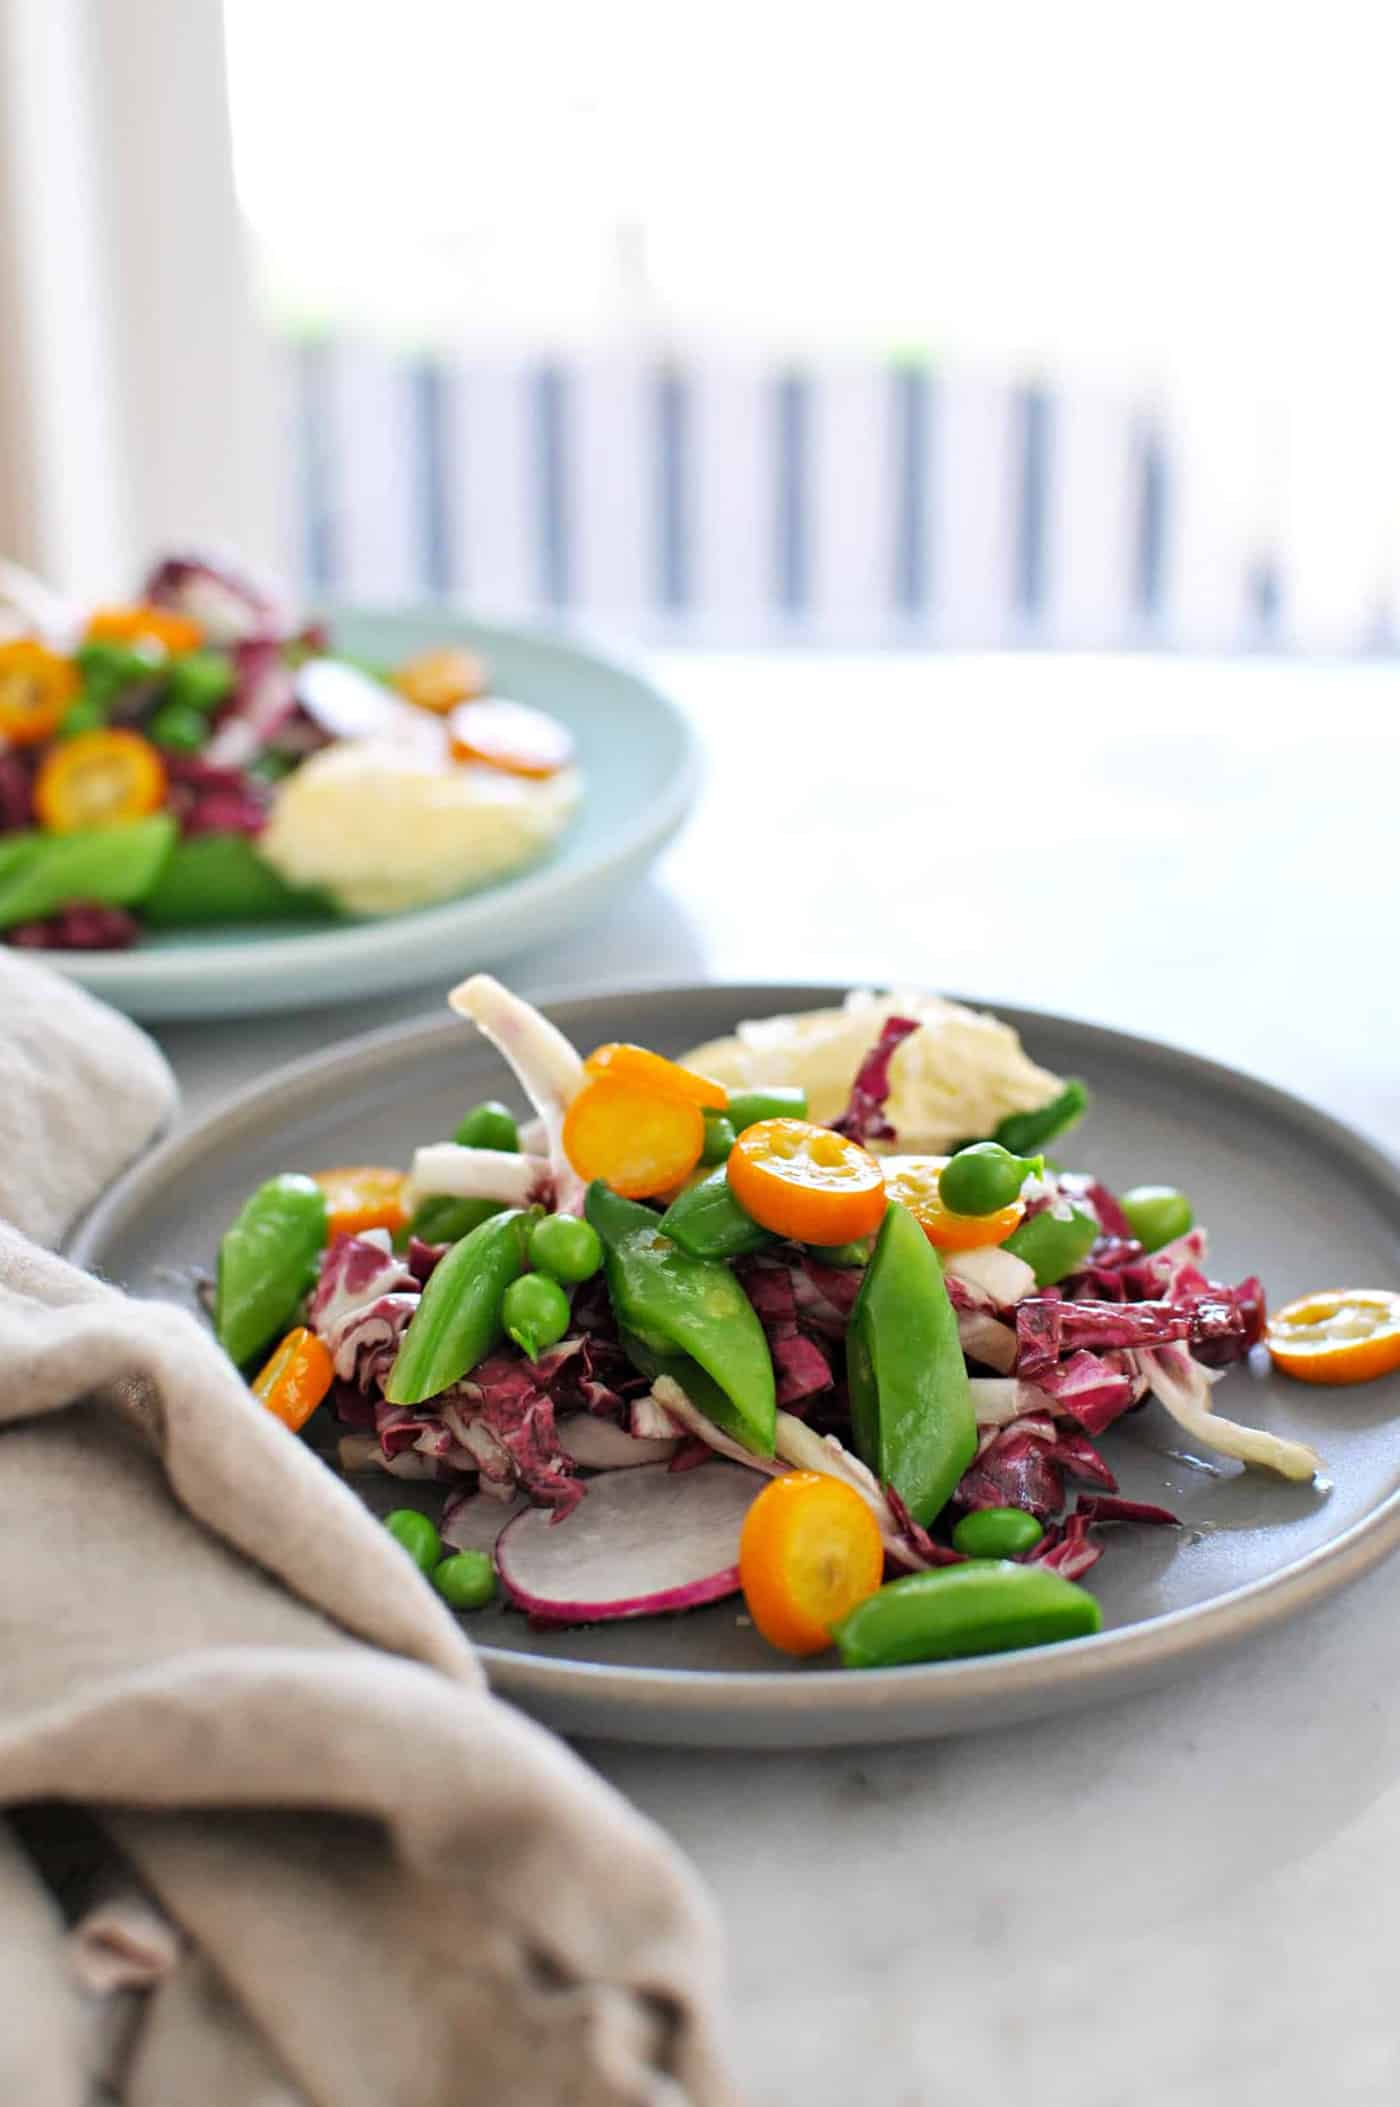 Spring Things Salad with Pickled Kumquats + Whipped Brie recipe (via thepigandquill.com) #vegetarian #glutenfree #lunch